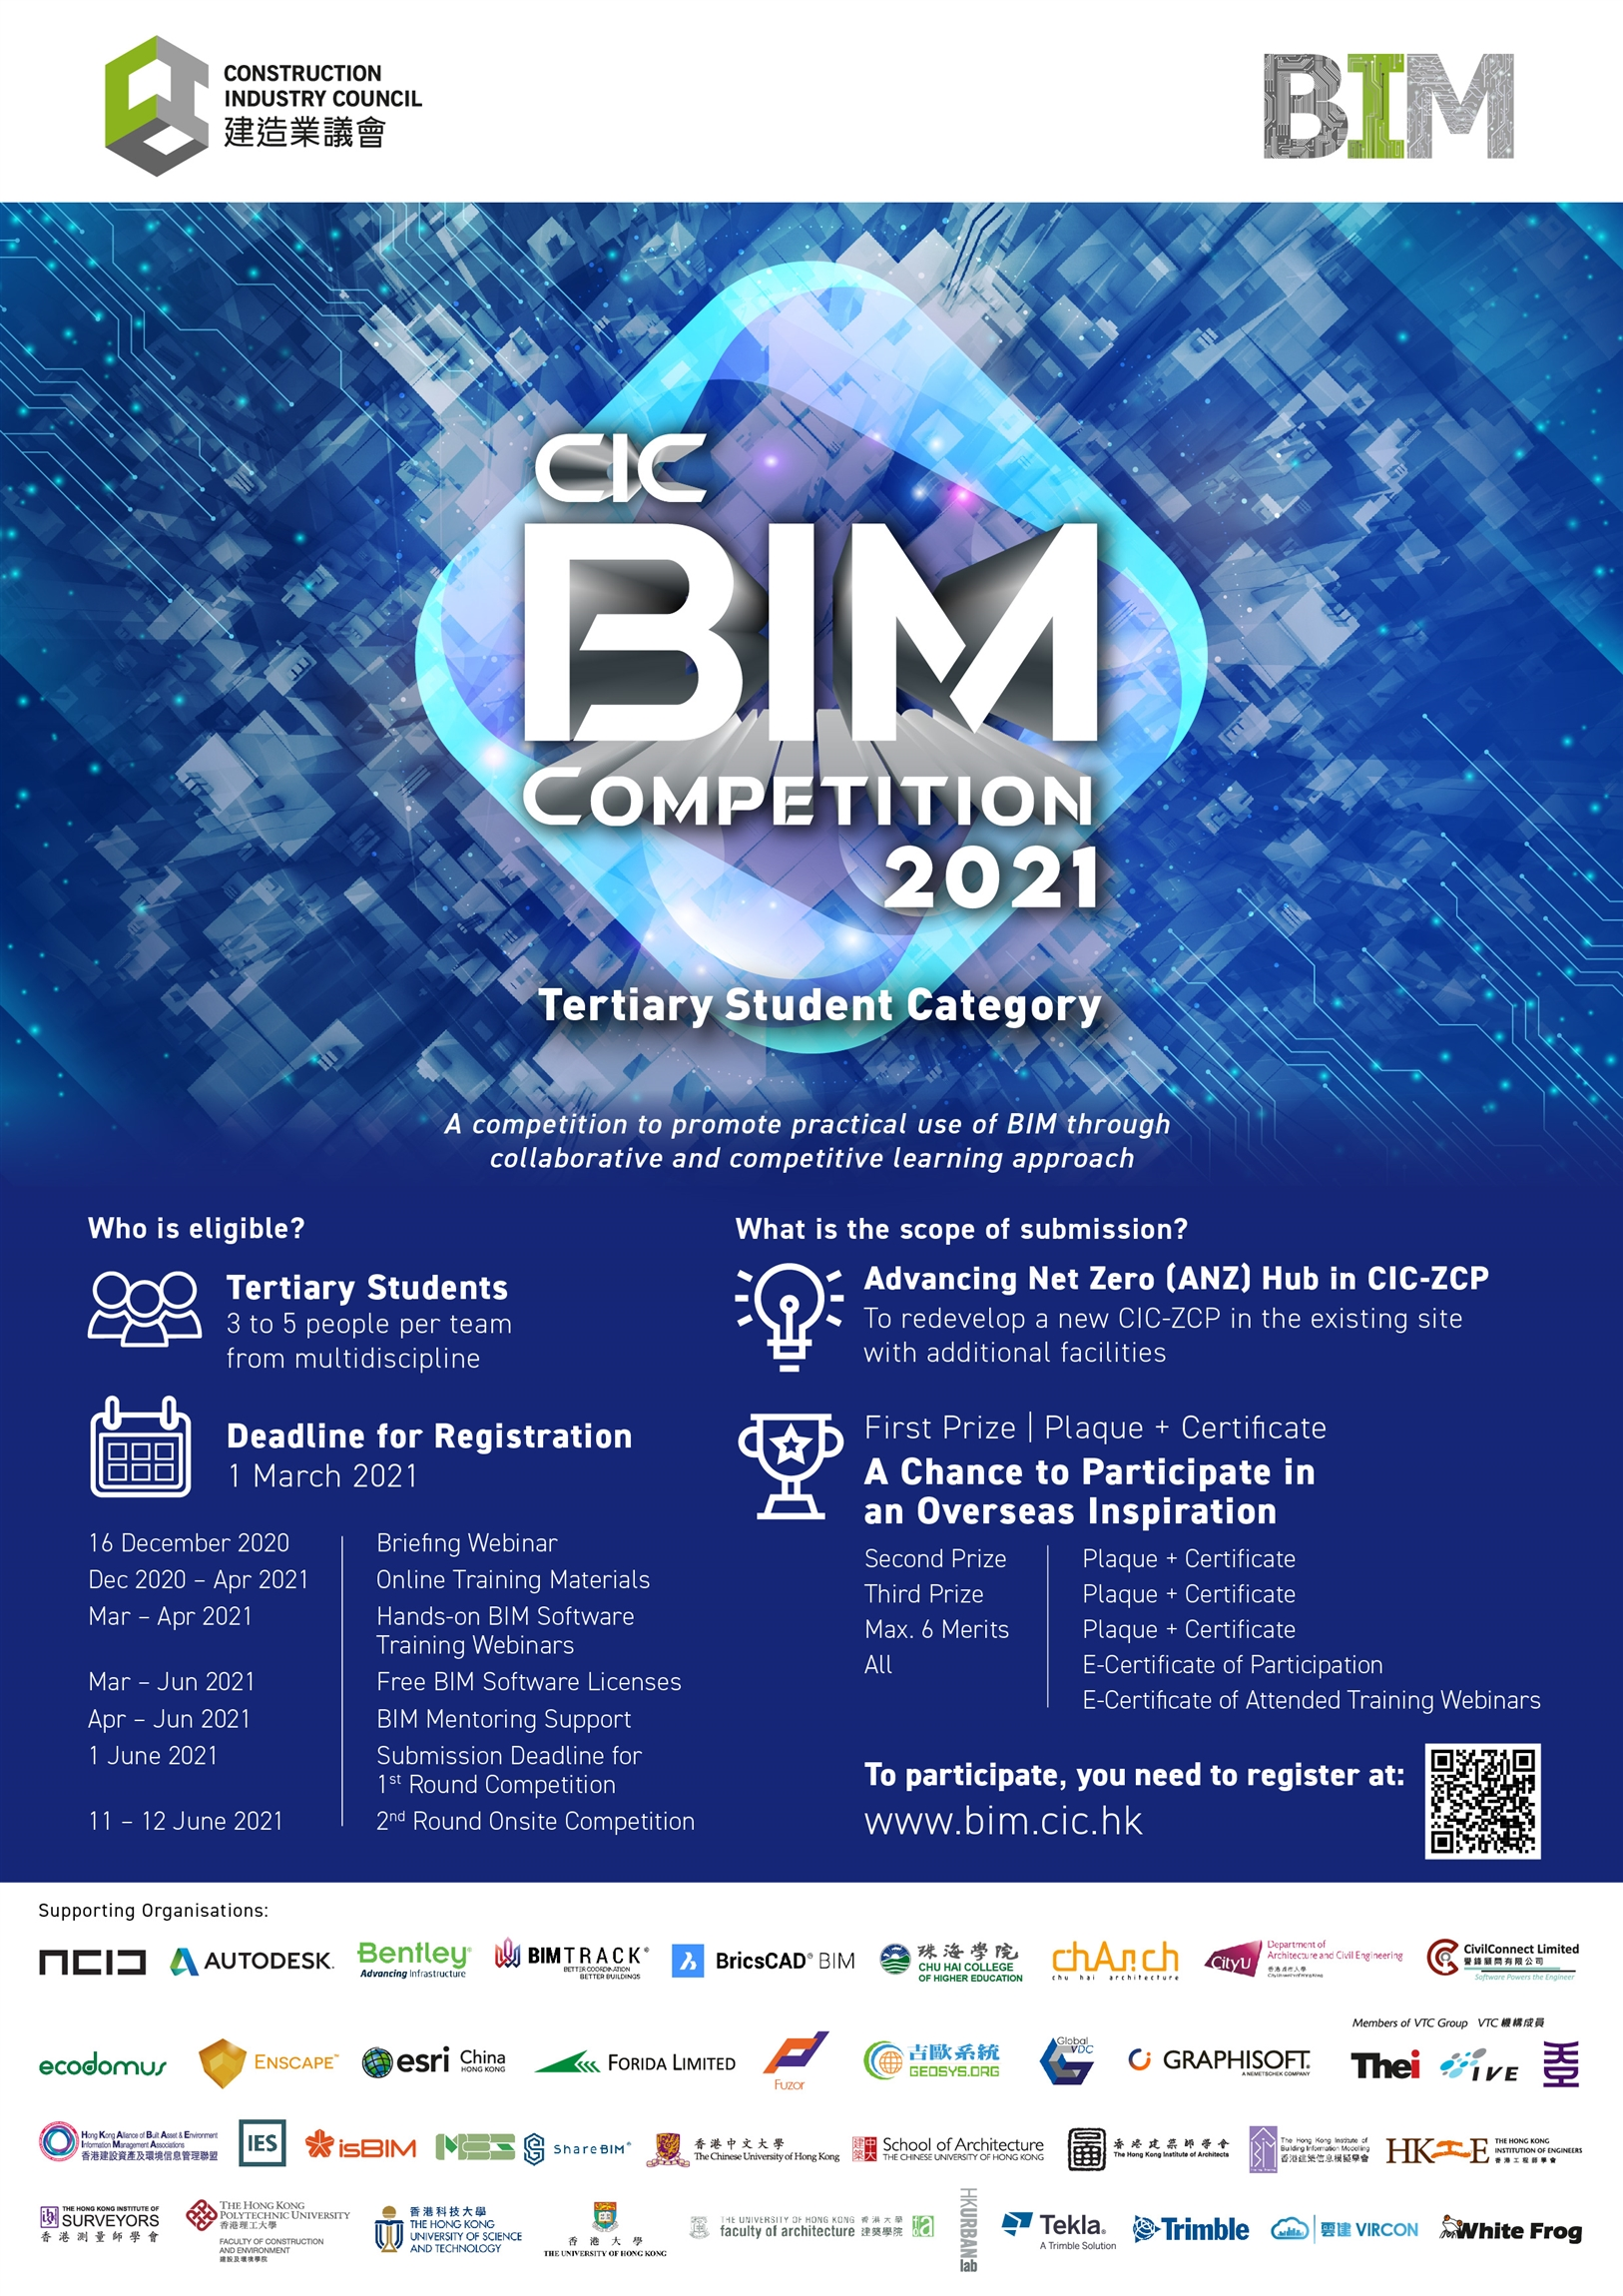 bimcompetition2021.jpg